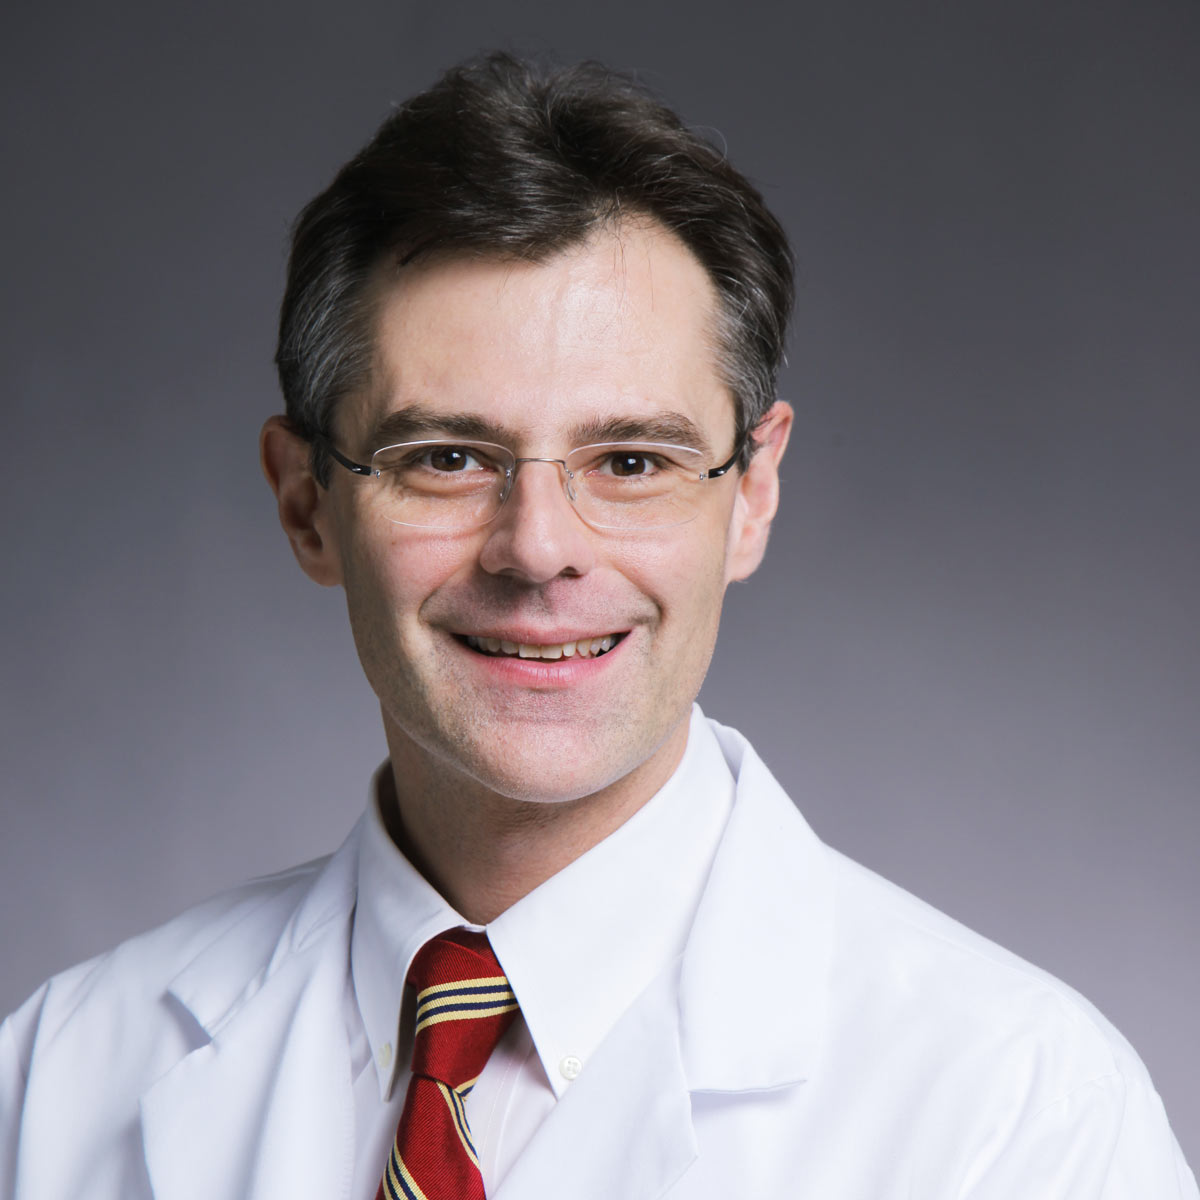 John A. Carucci,MD, PhD. Dermatologic Surgery, Dermatology